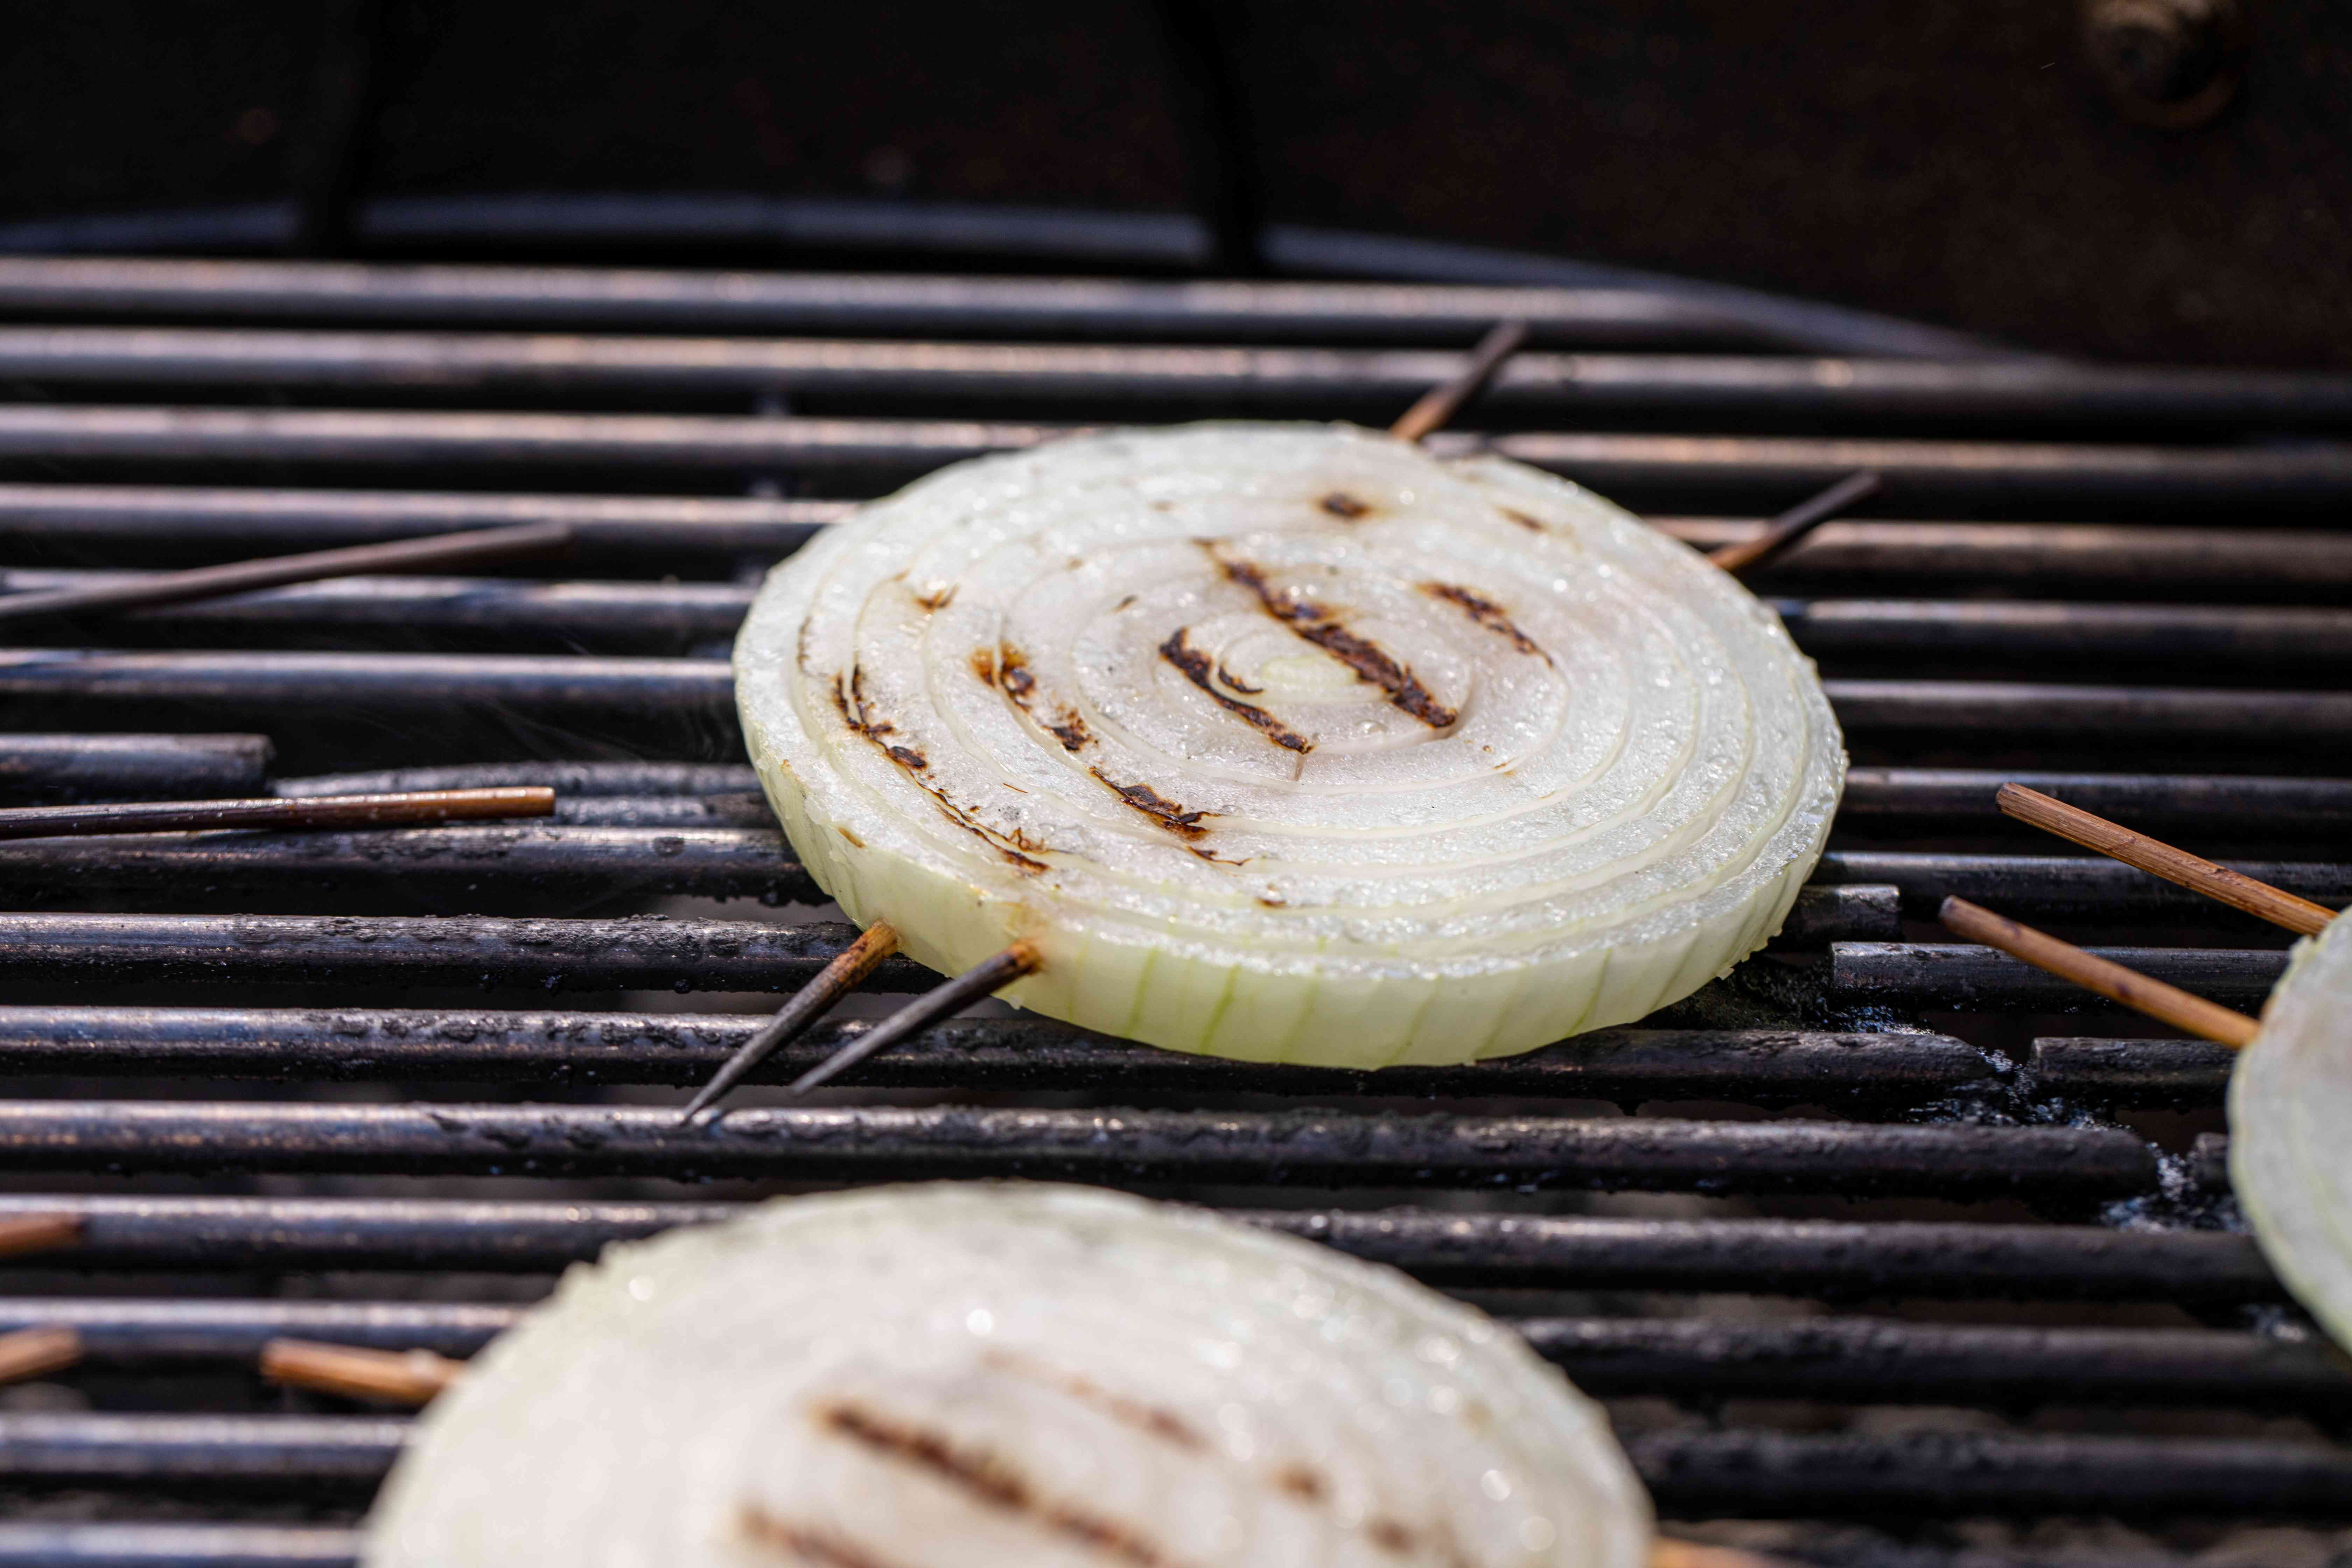 Onions on a grill to show how to grill onions.